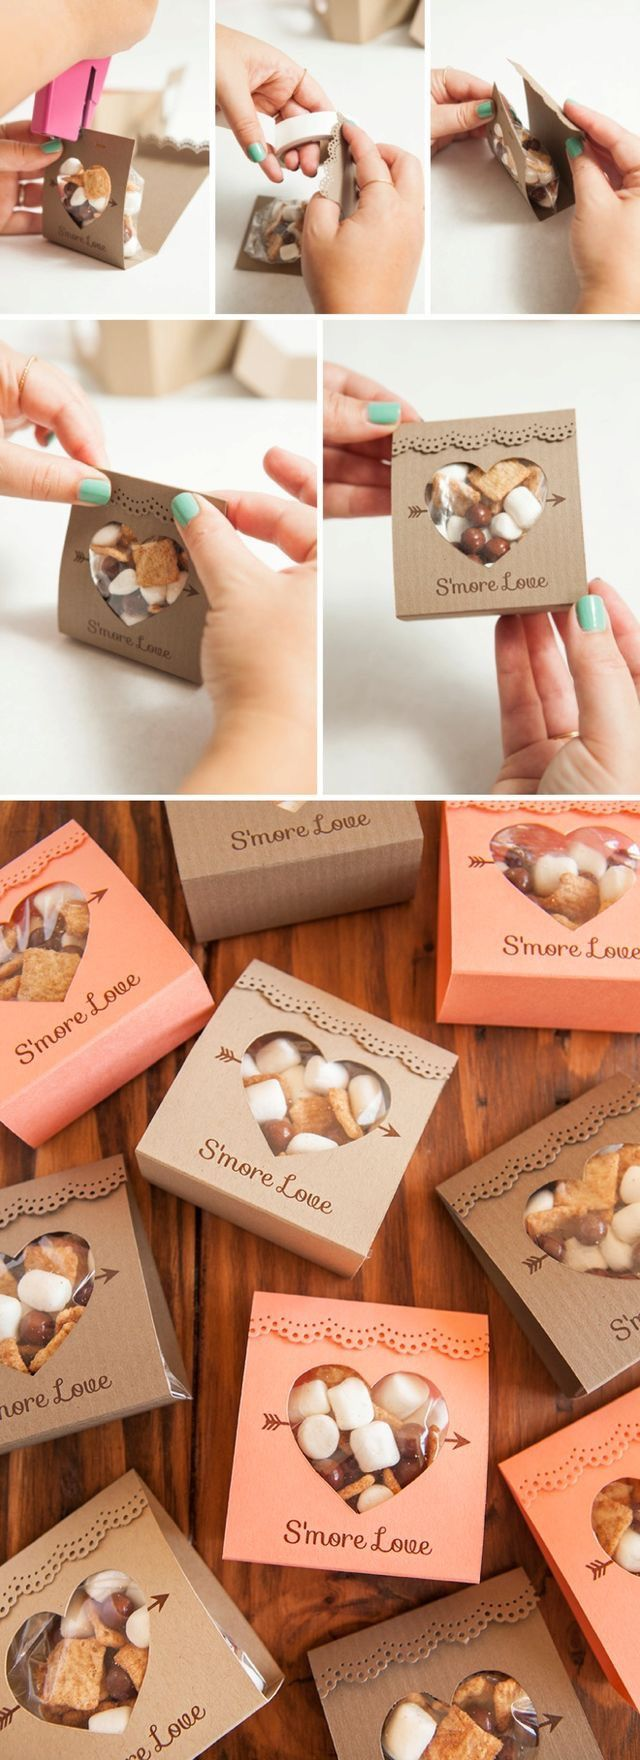 Pin by ashley on gift ideas in pinterest wedding favors